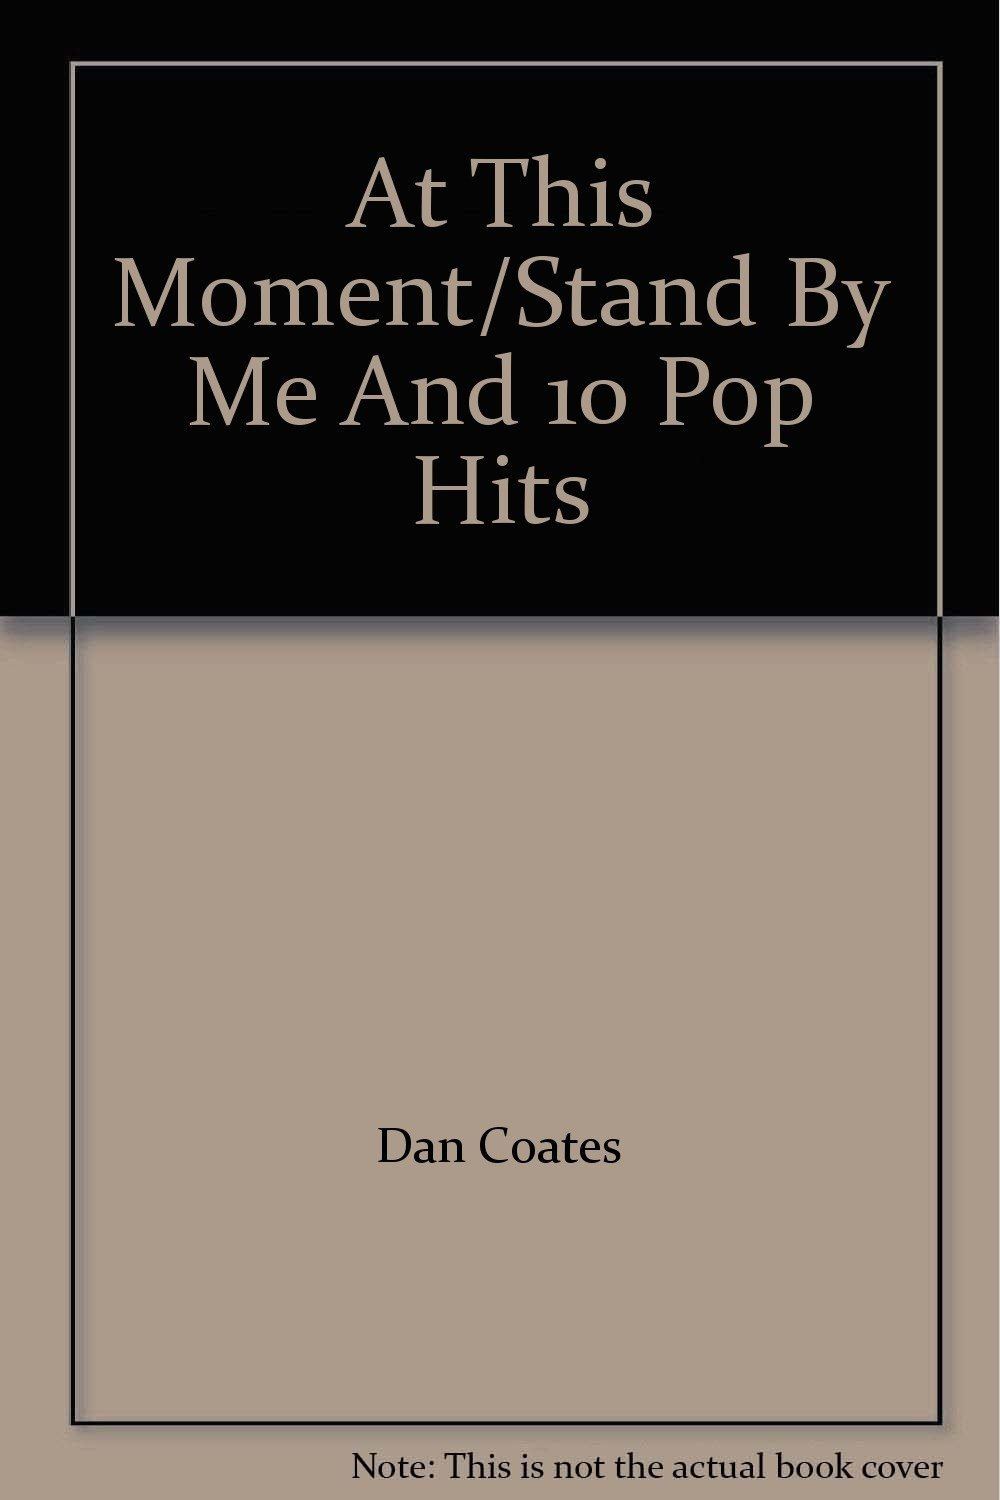 at this moment stand by me and 10 pop hits